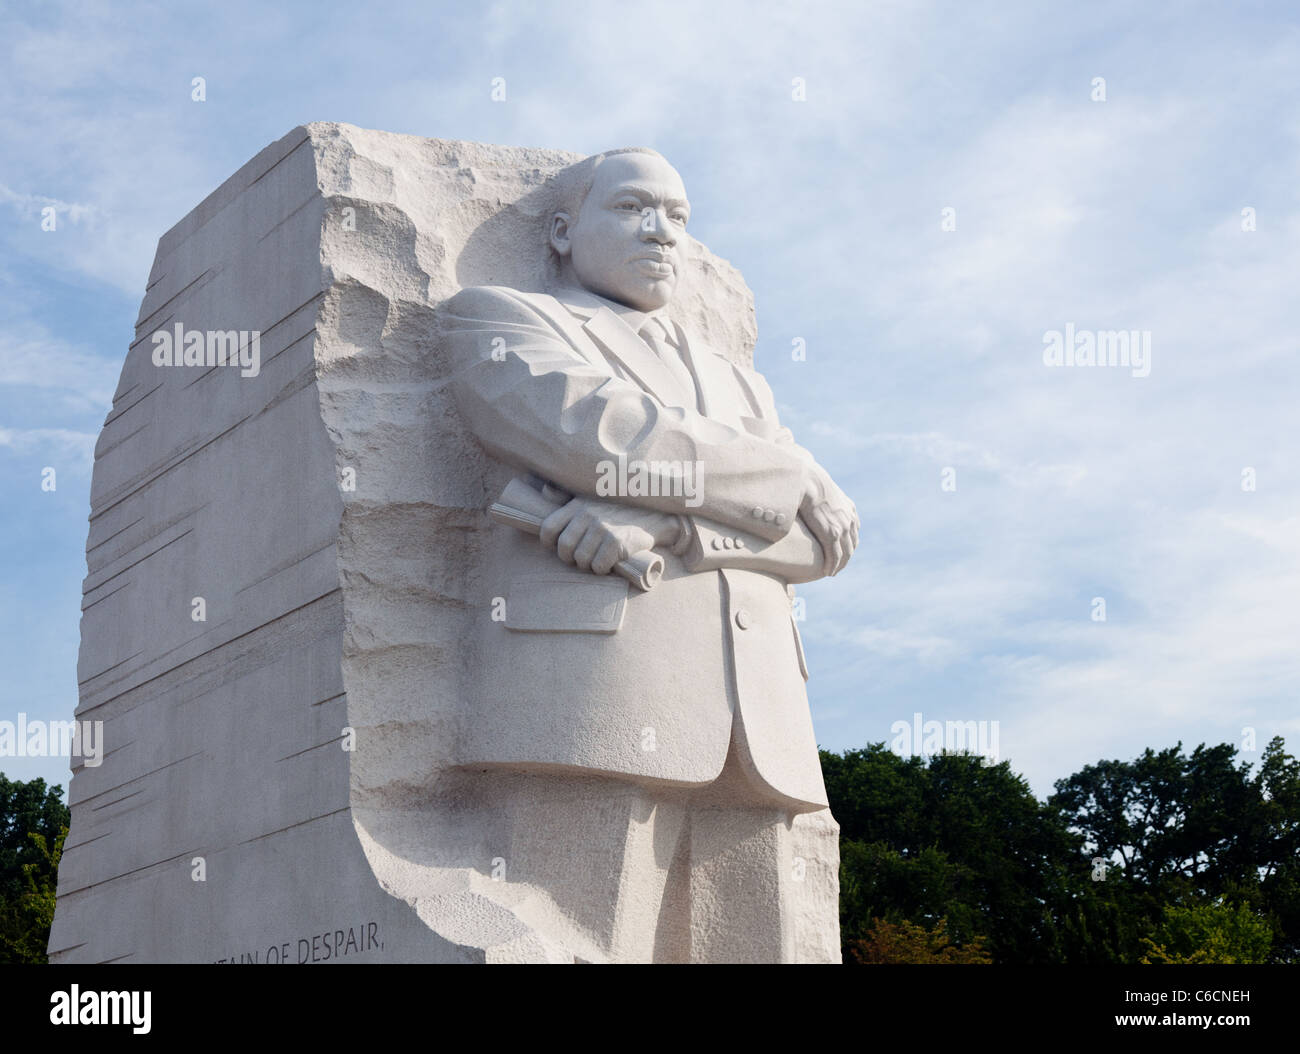 Washington Dc August 24 The Monument To Dr Martin Luther King In